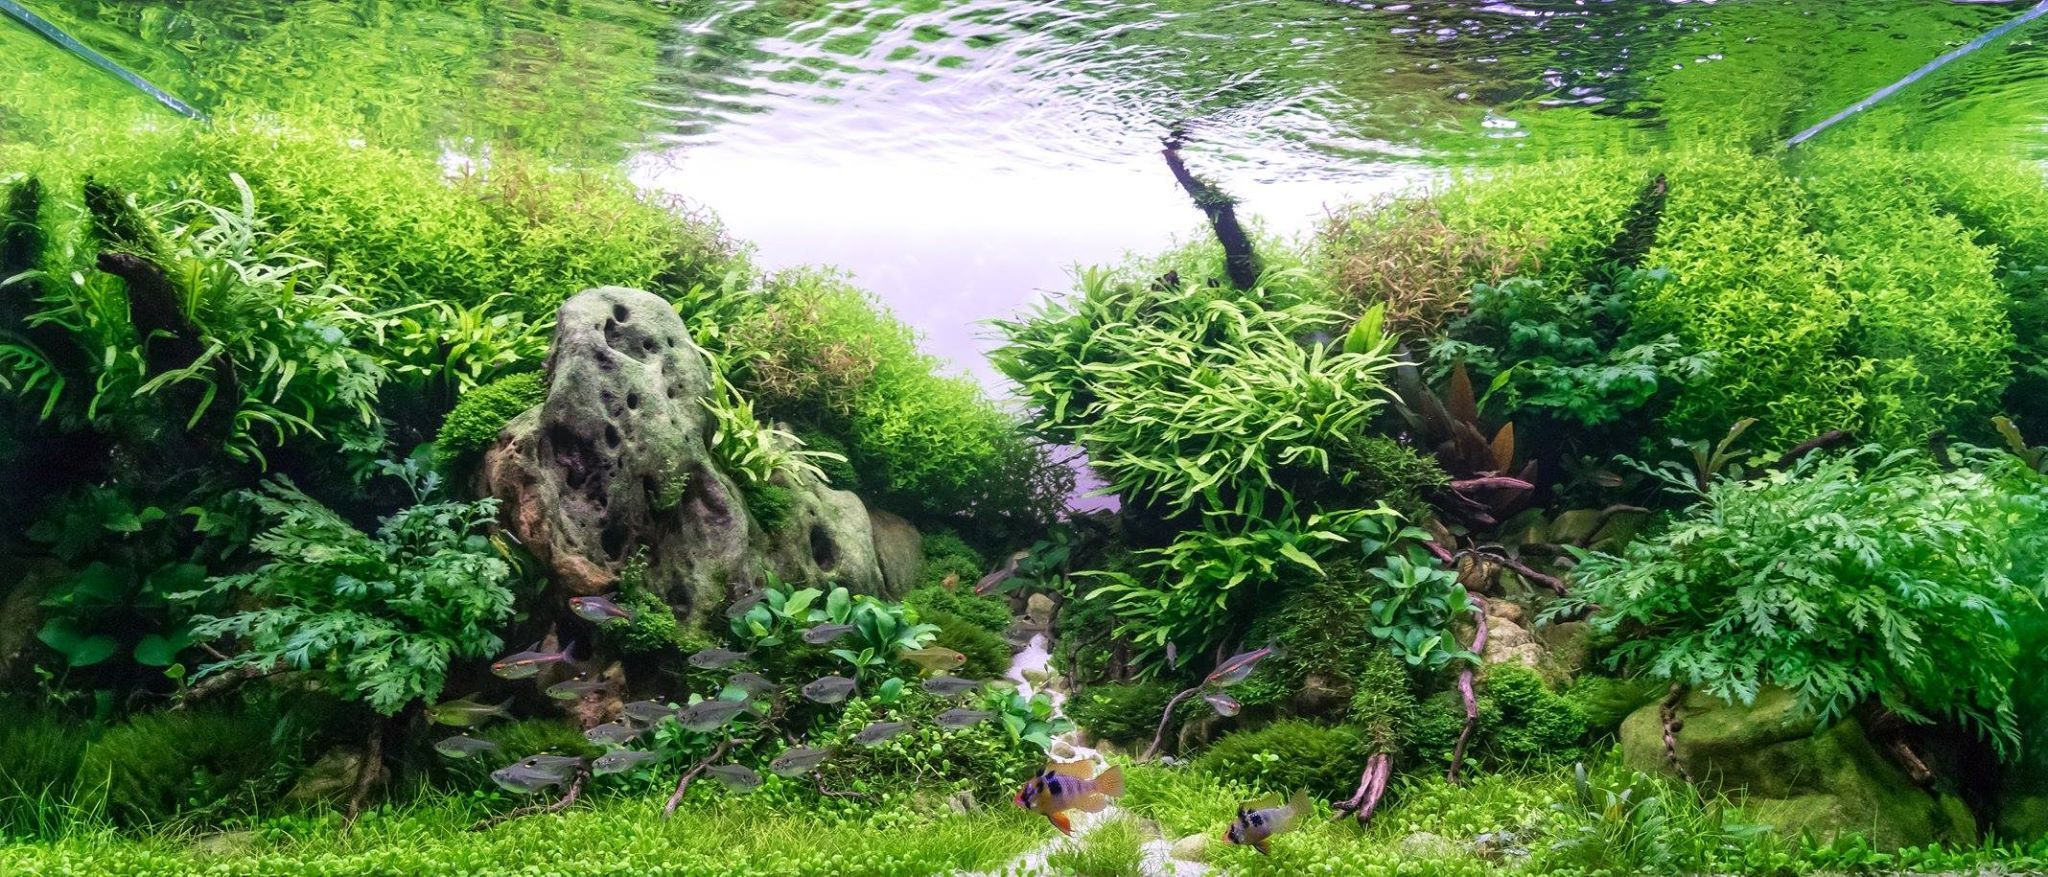 Follow This Space To Get A One Click Access To Latest Information, Videos  And Articles About The State Of The Art In Aquascaping, As Well As Other  Related ...